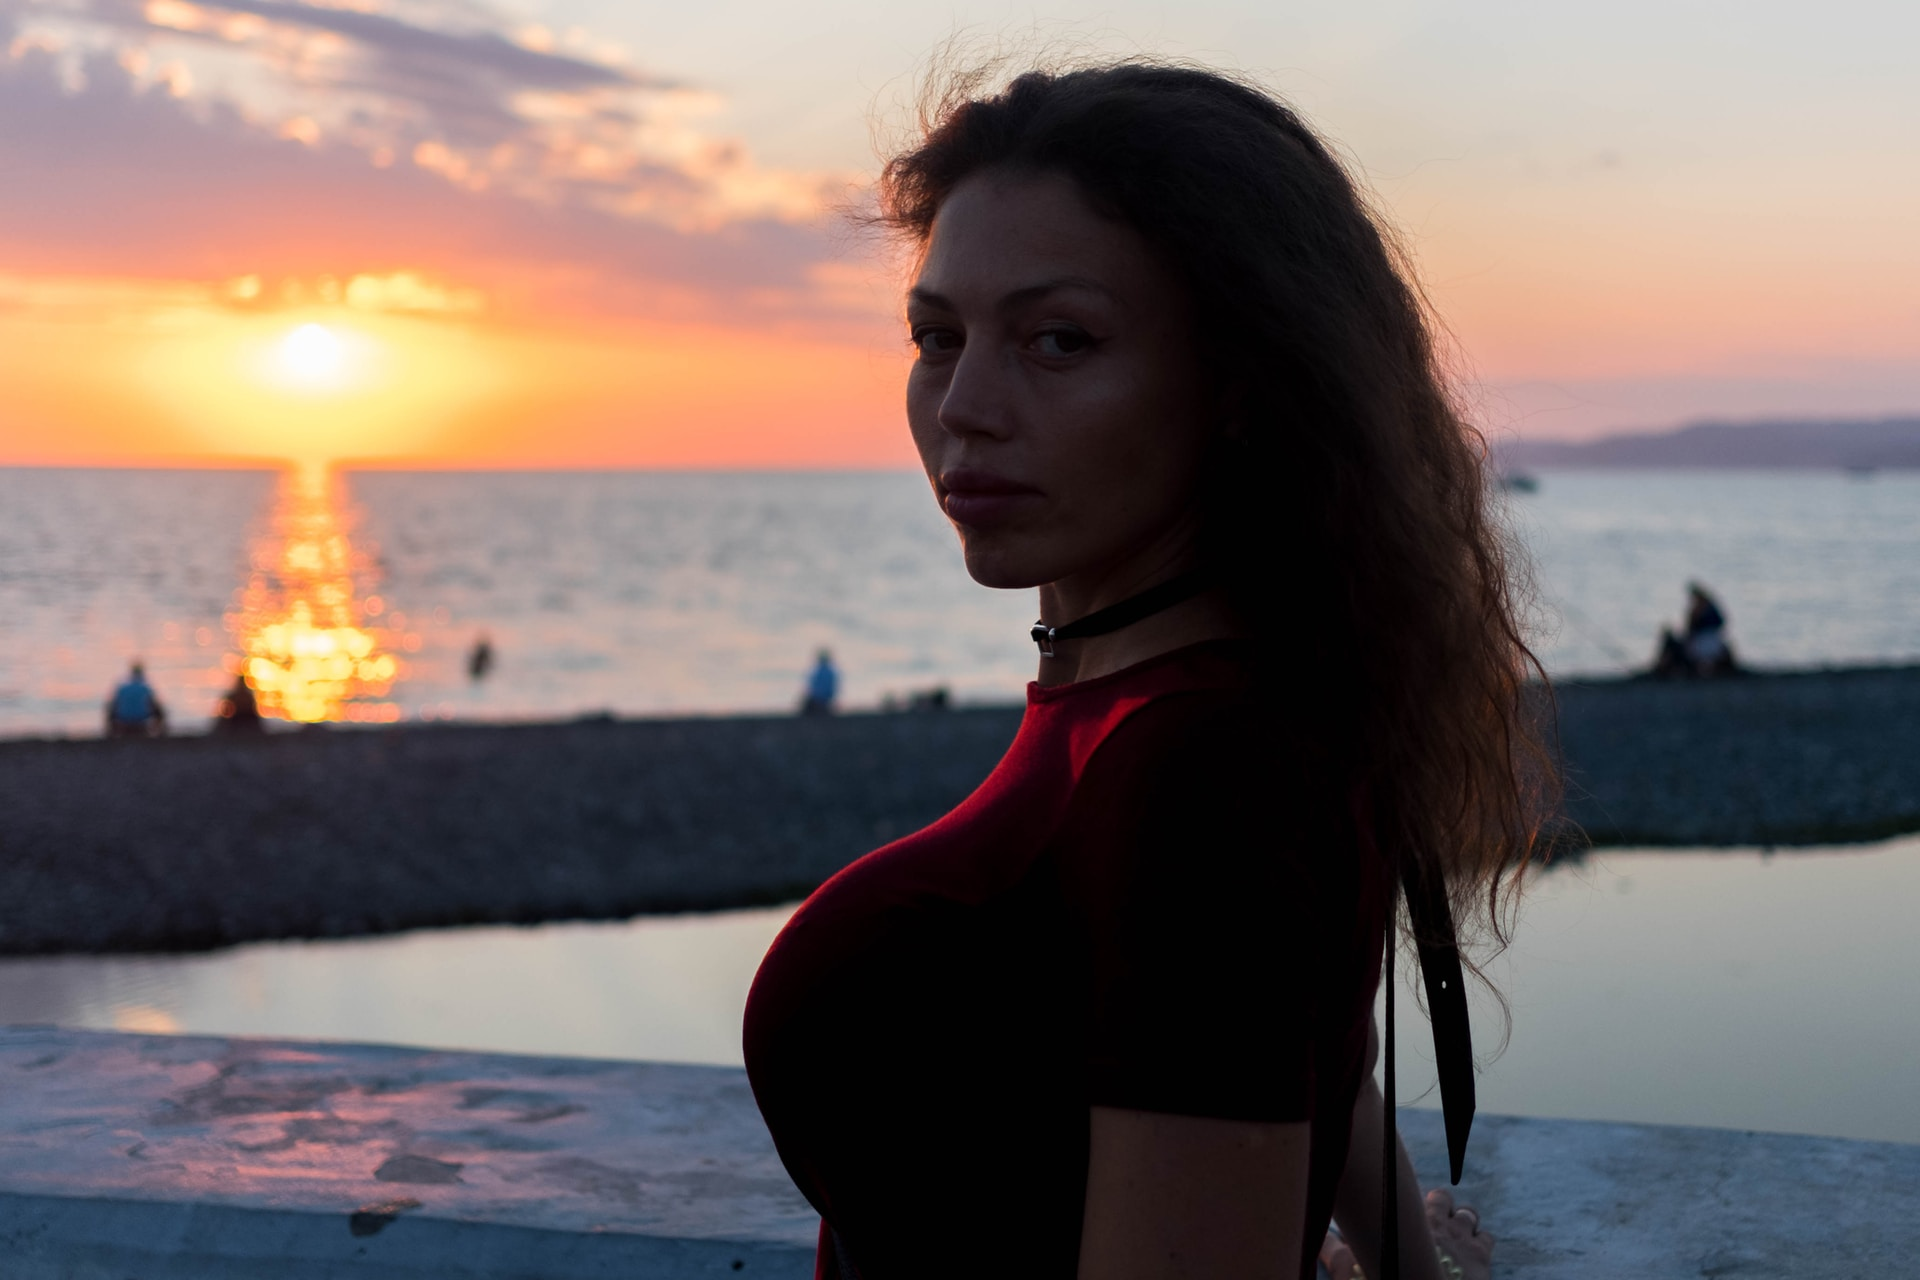 woman in red long sleeve shirt standing on beach during sunset